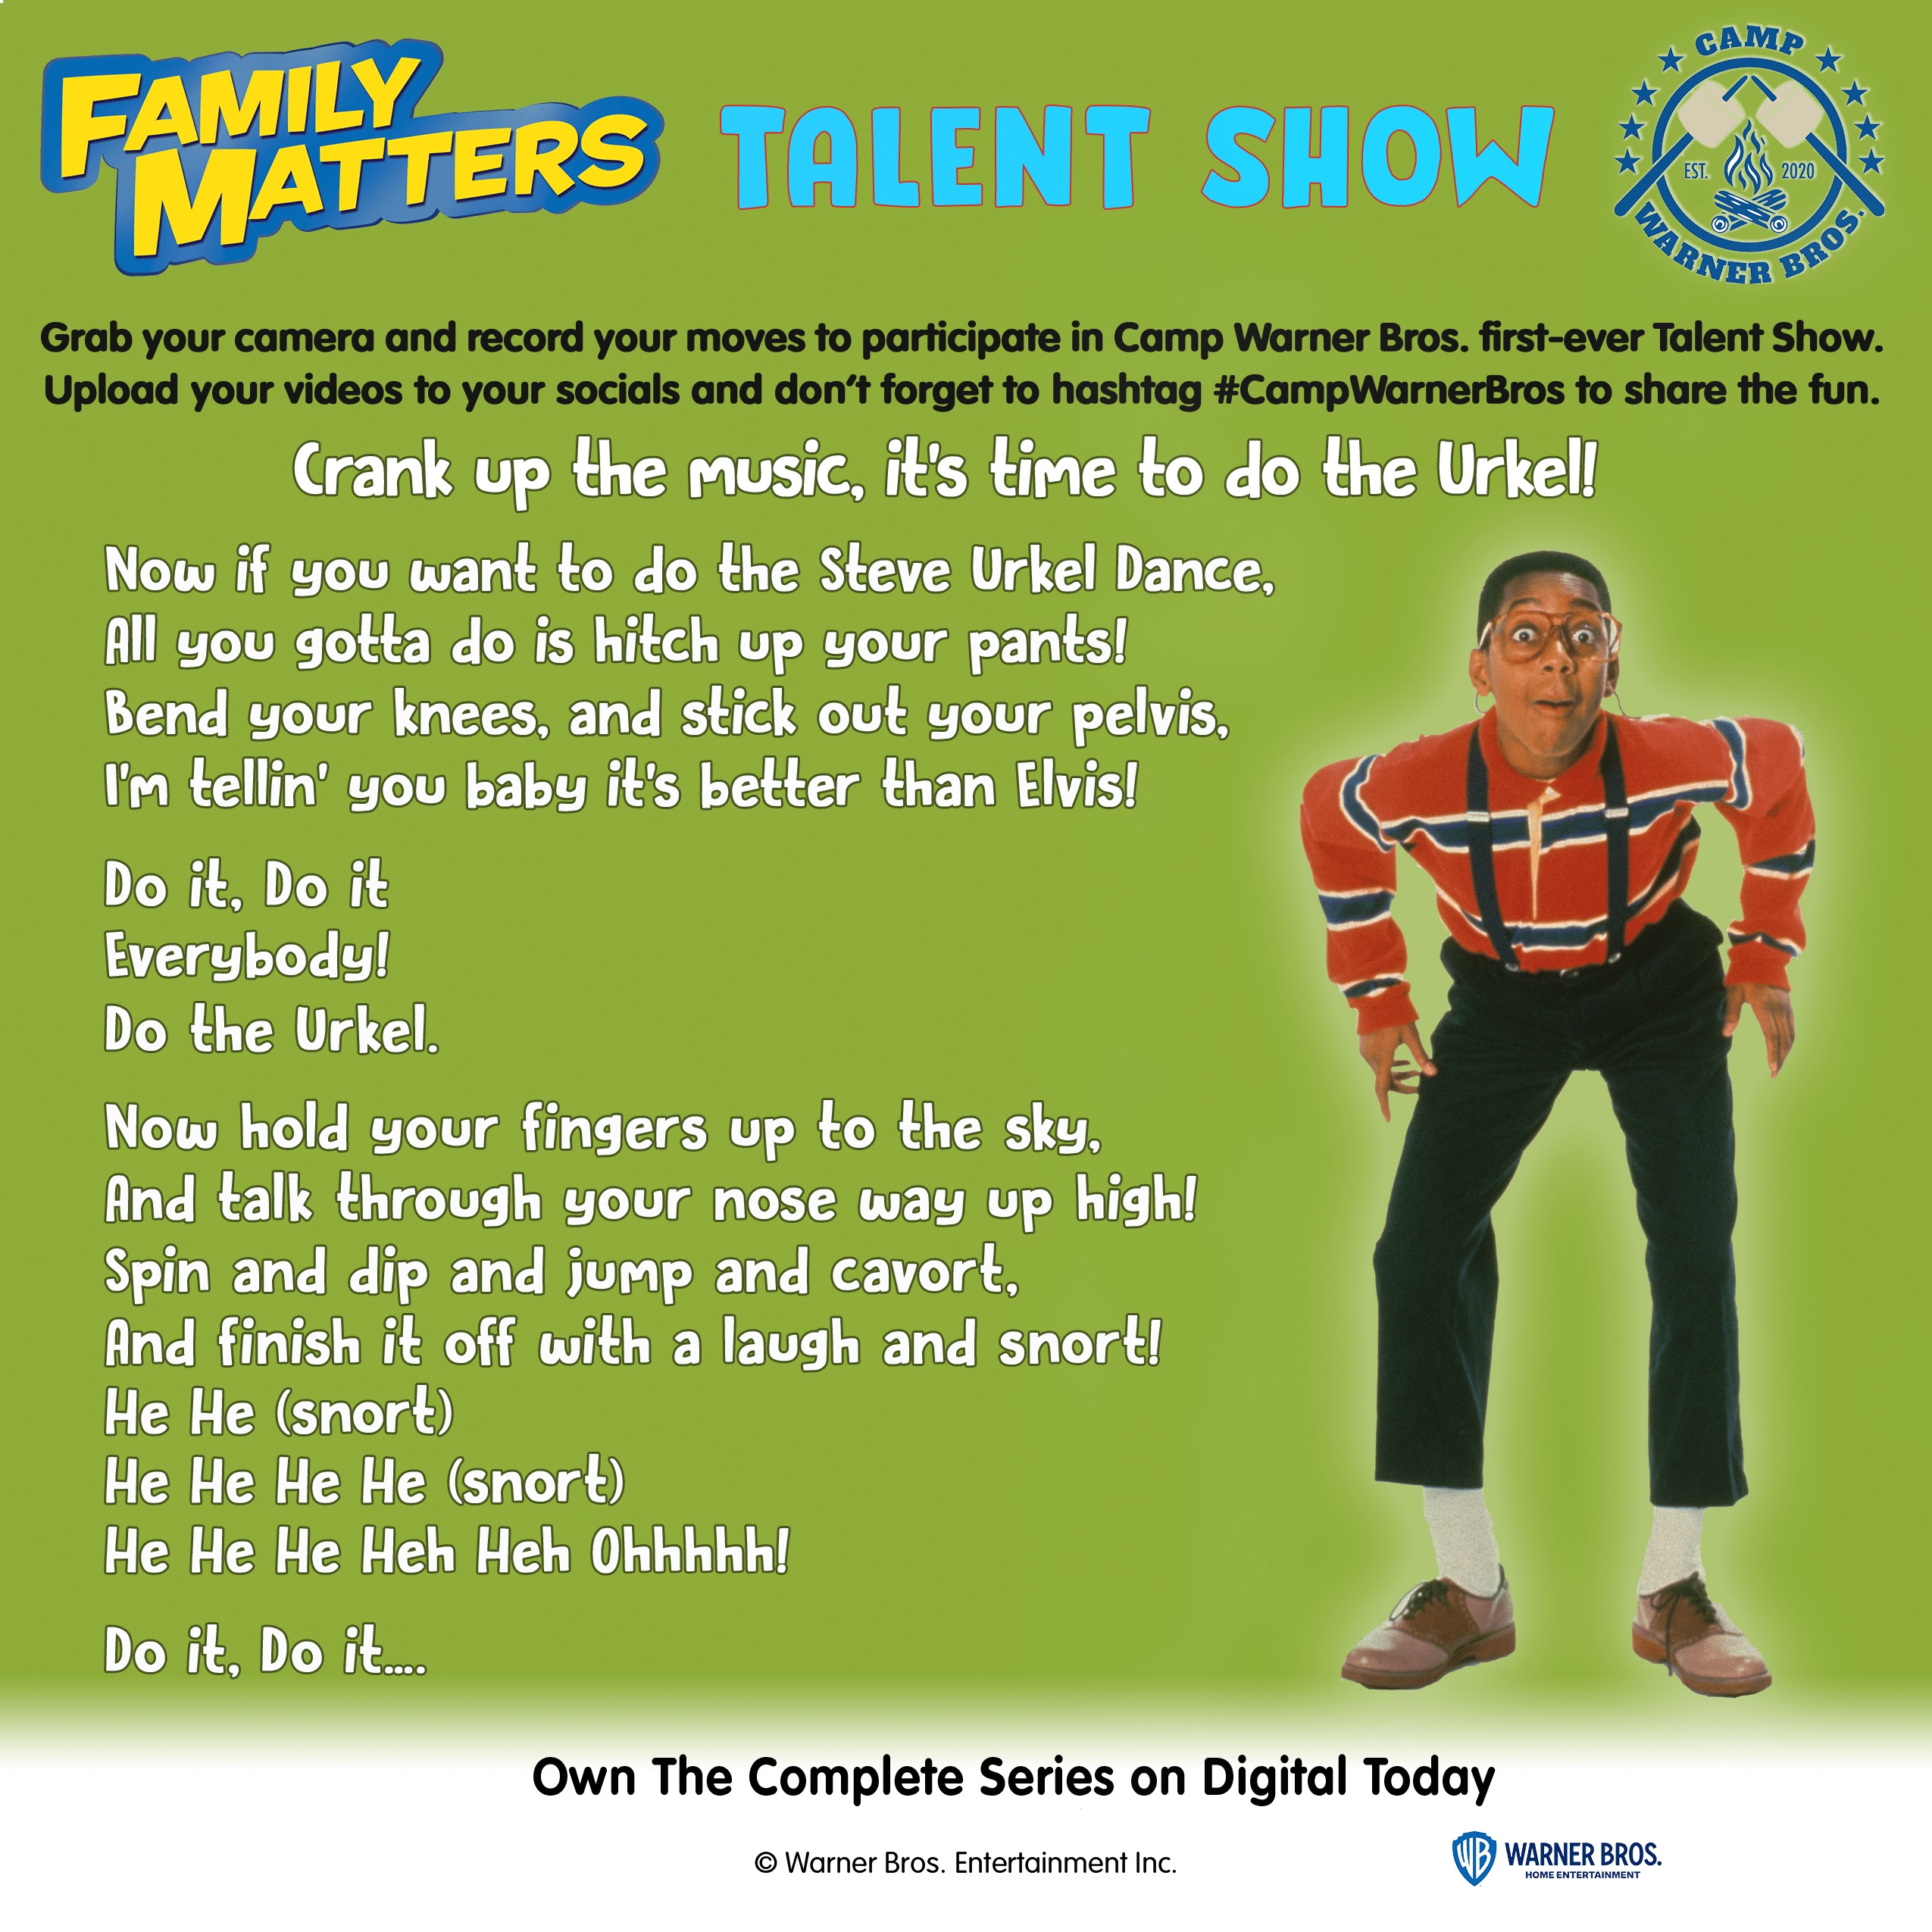 Camp Warner Bros. Family Matters Do The Urkel. Grab your camera and record your moves in the first ever Camp Warner Bros. Talent Show! Upload your videos to your socials, and don't forget to use the #CampWarnerBros to share the fun.